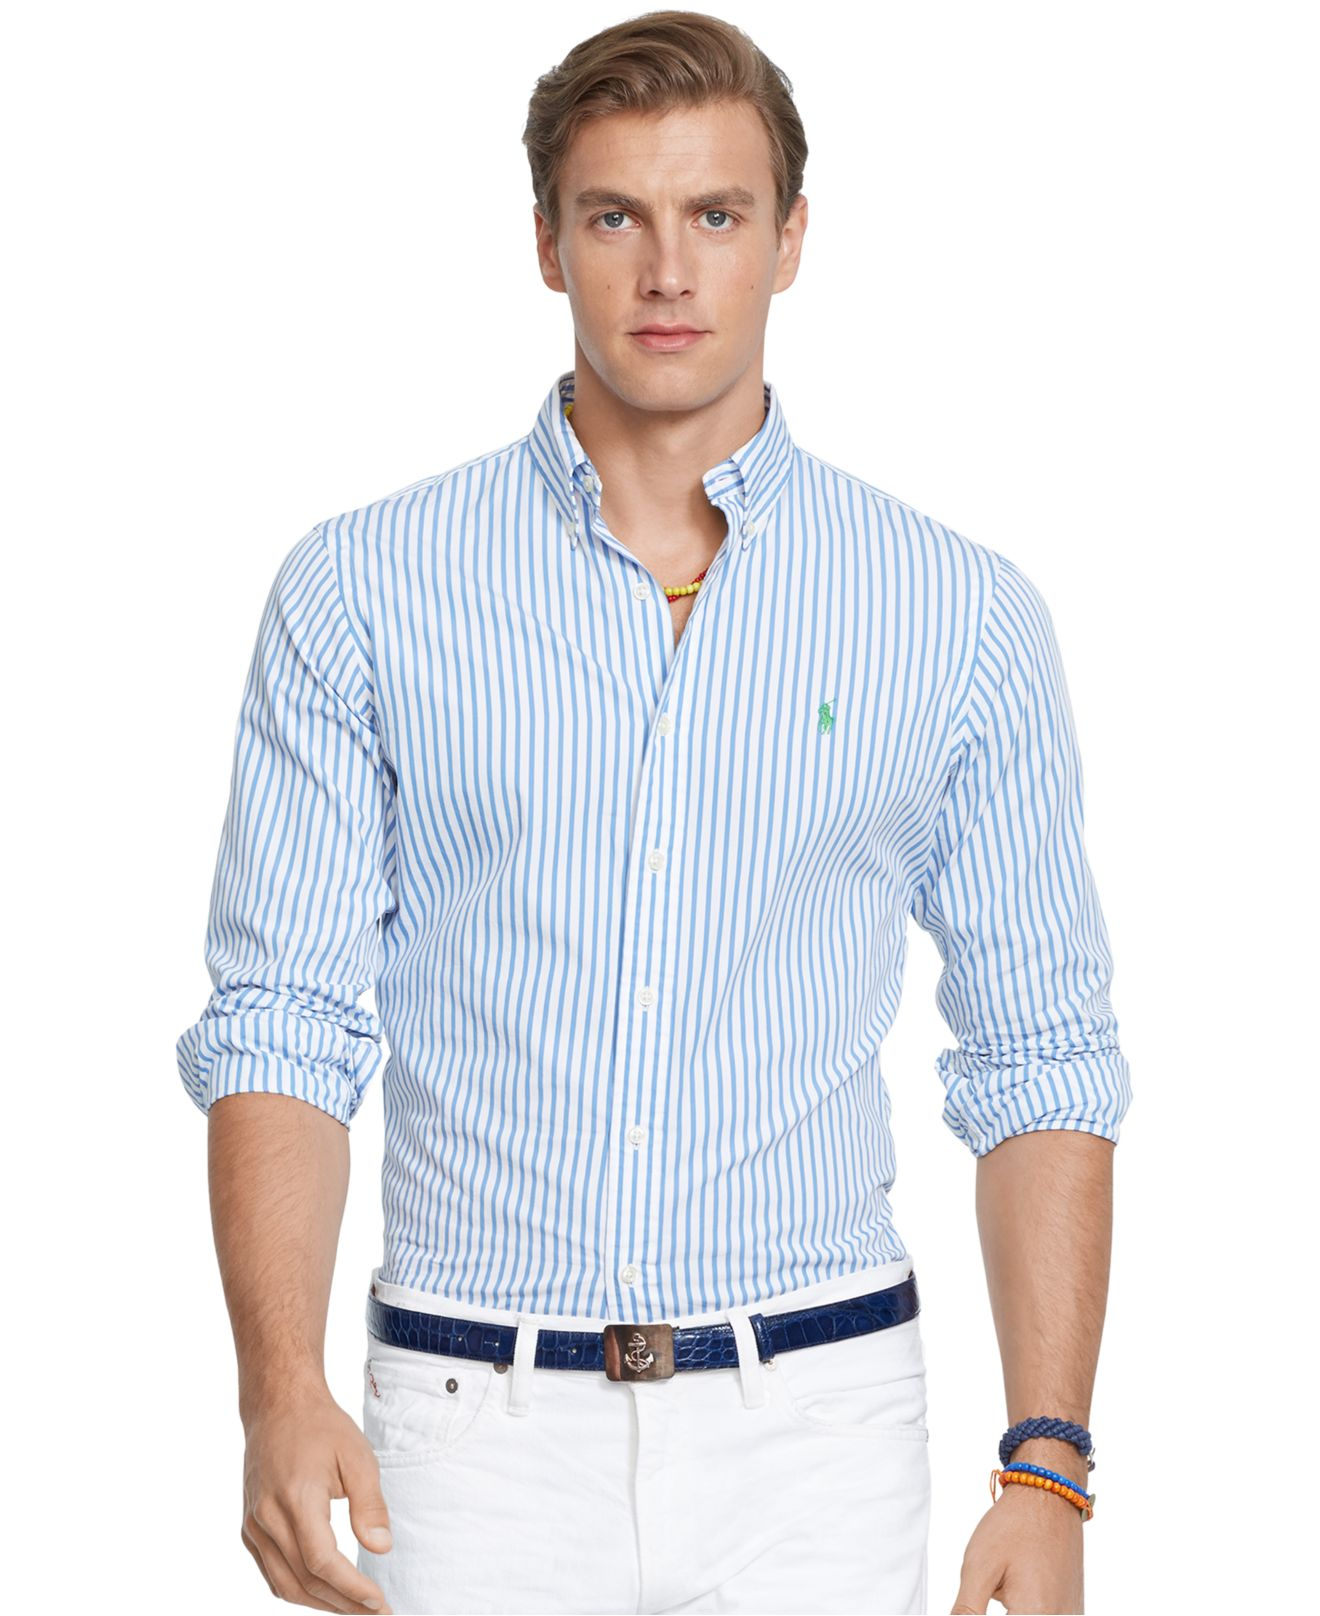 5ed8eb6042 Polo Ralph Lauren Striped Poplin Shirt in Blue for Men - Lyst